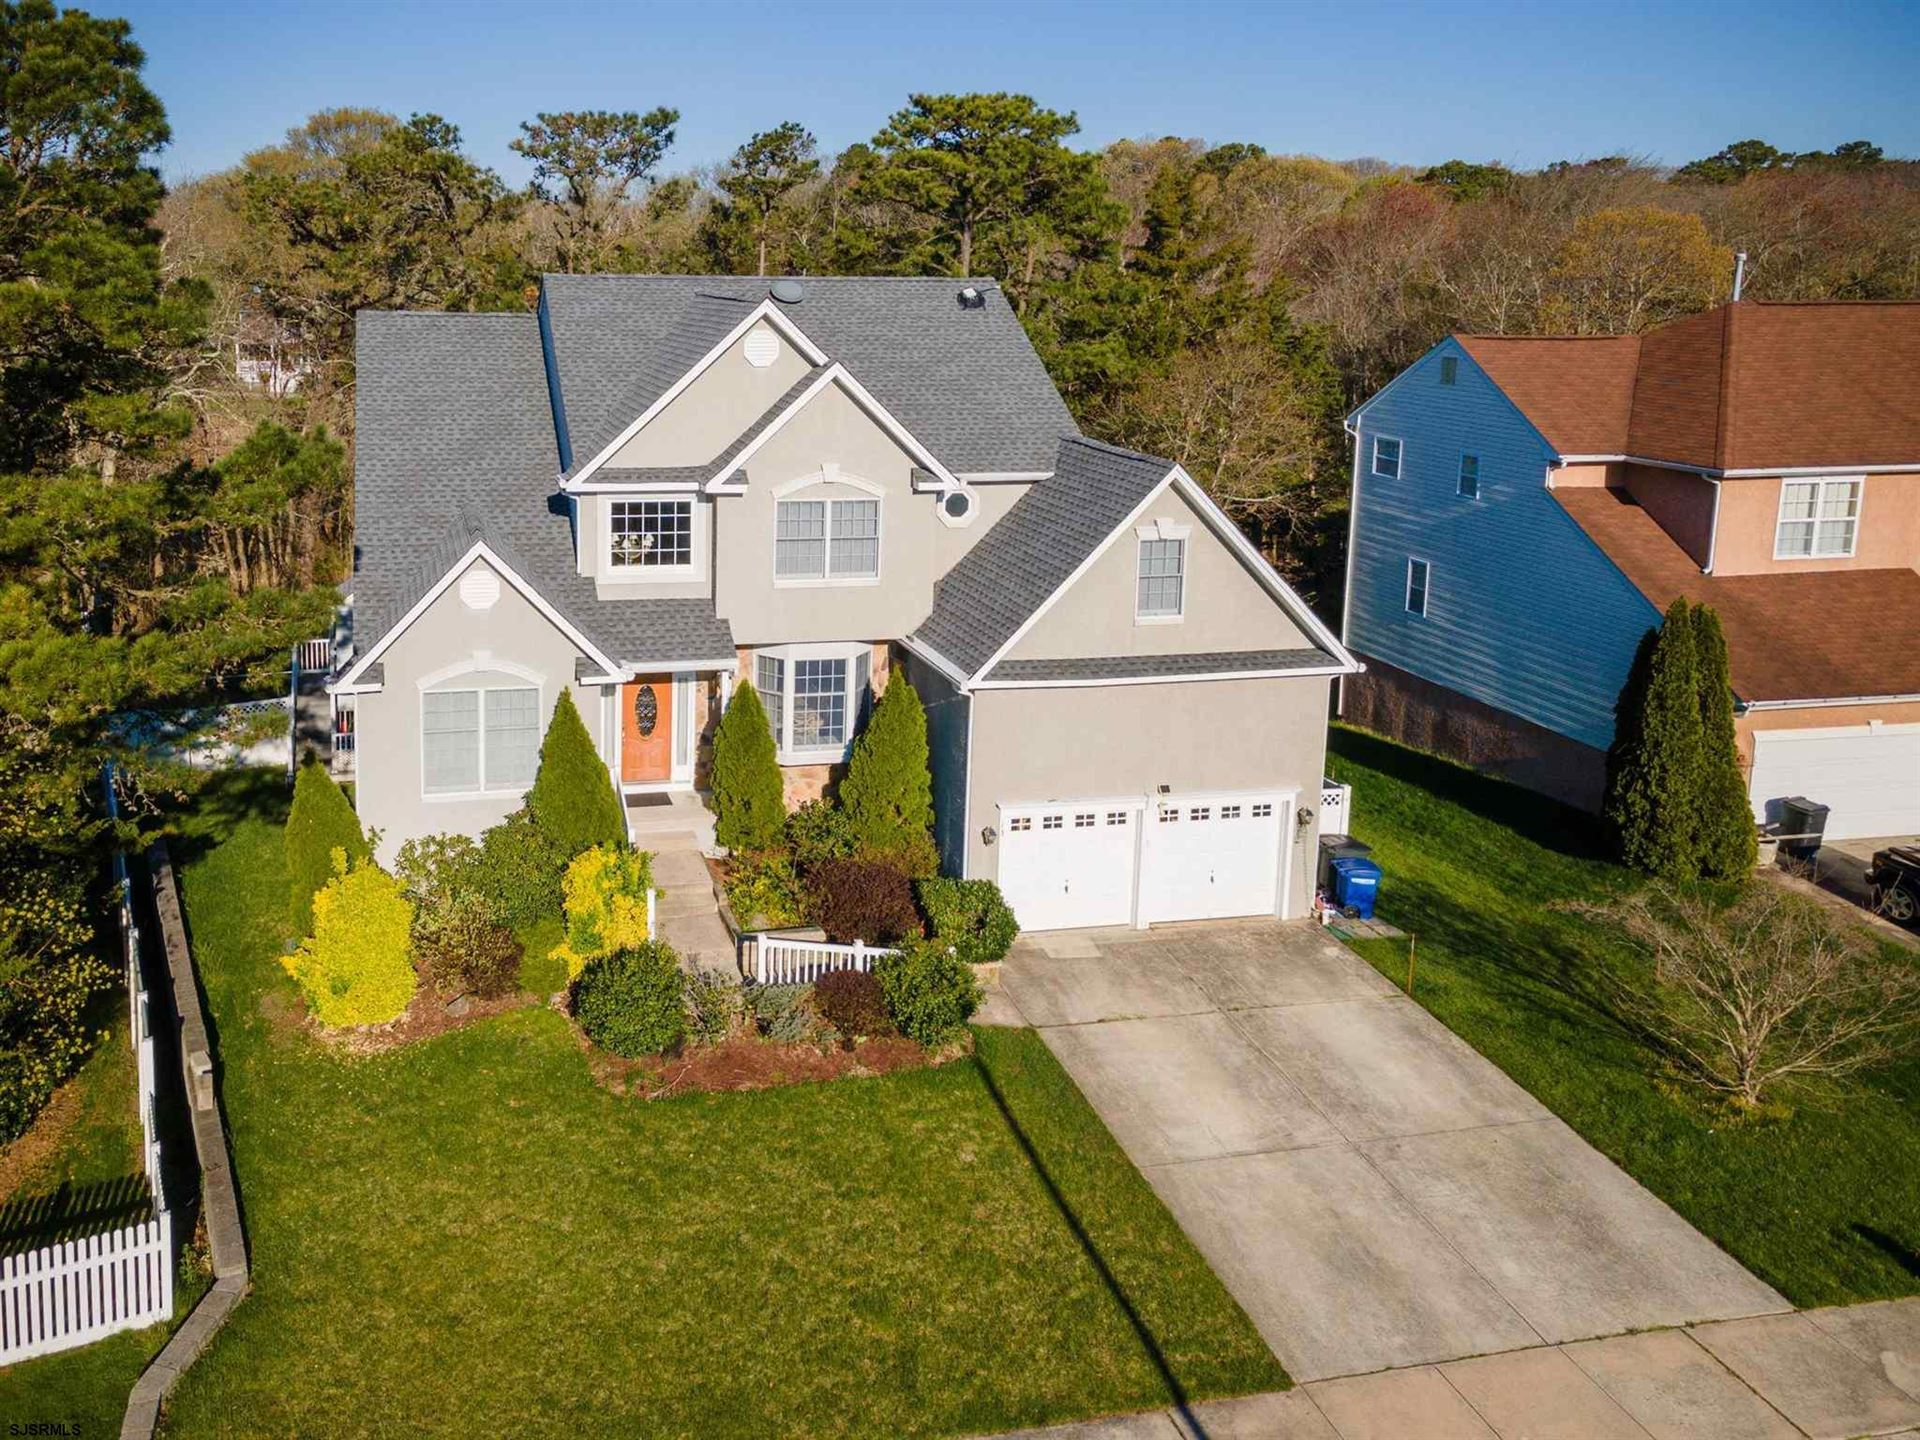 13 Ruth Ct, Absecon, NJ 08201 - #: 550113